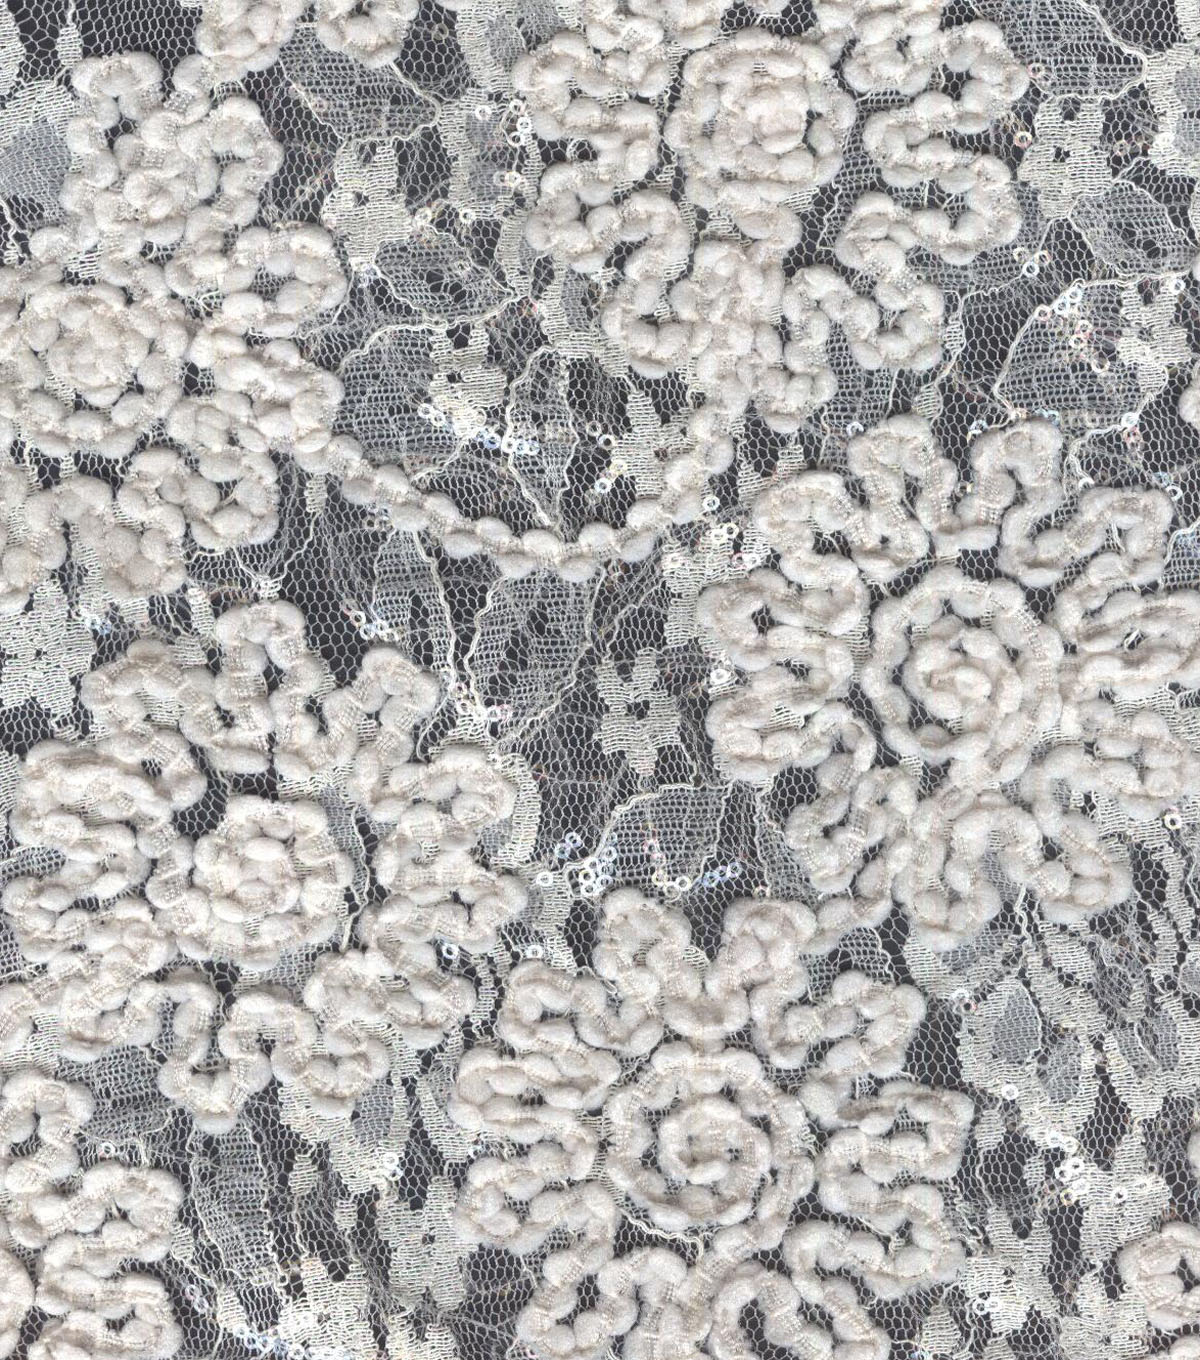 Bridal Inspirations Sequined Mesh Fabric 54\u0022-Embroidered Floral Ivory